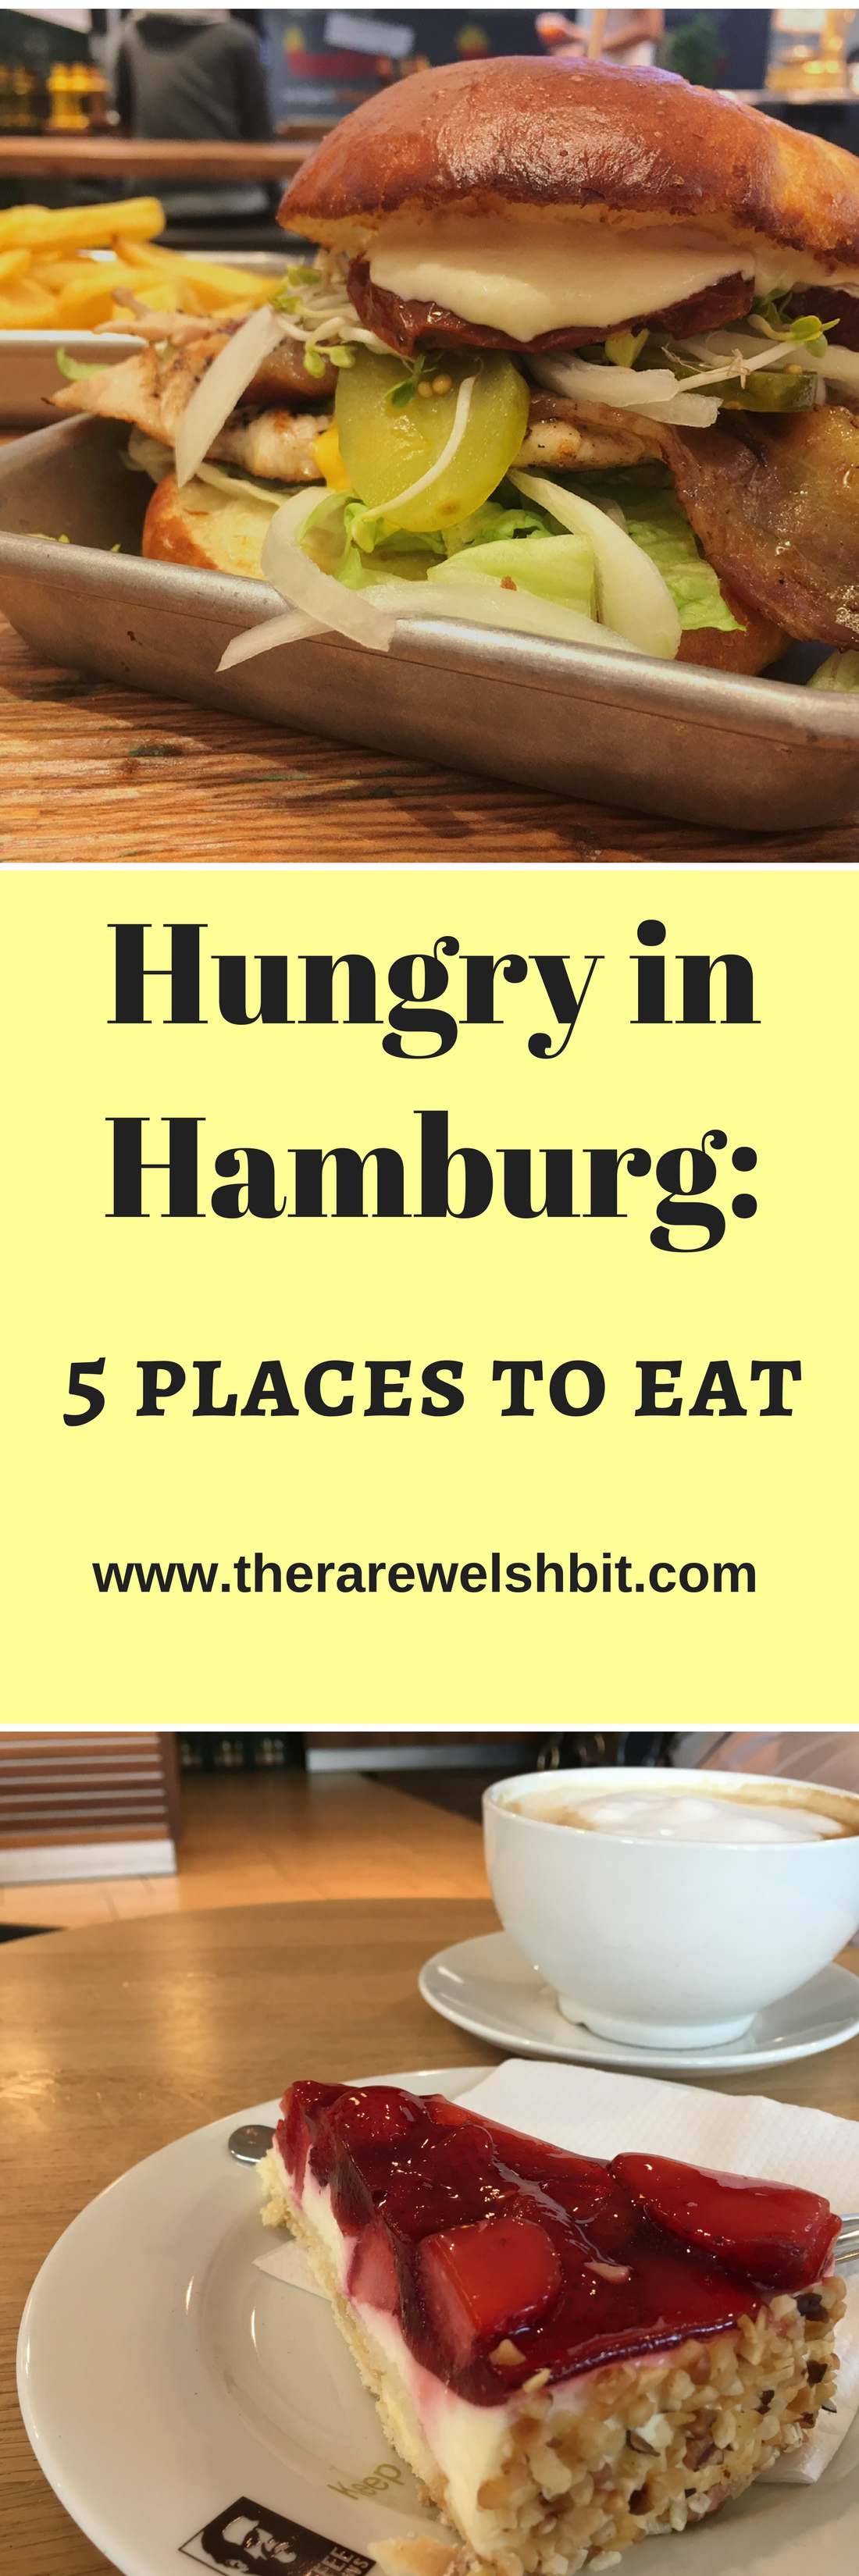 Hungry in Hamburg: 5 places to eat in Hamburg